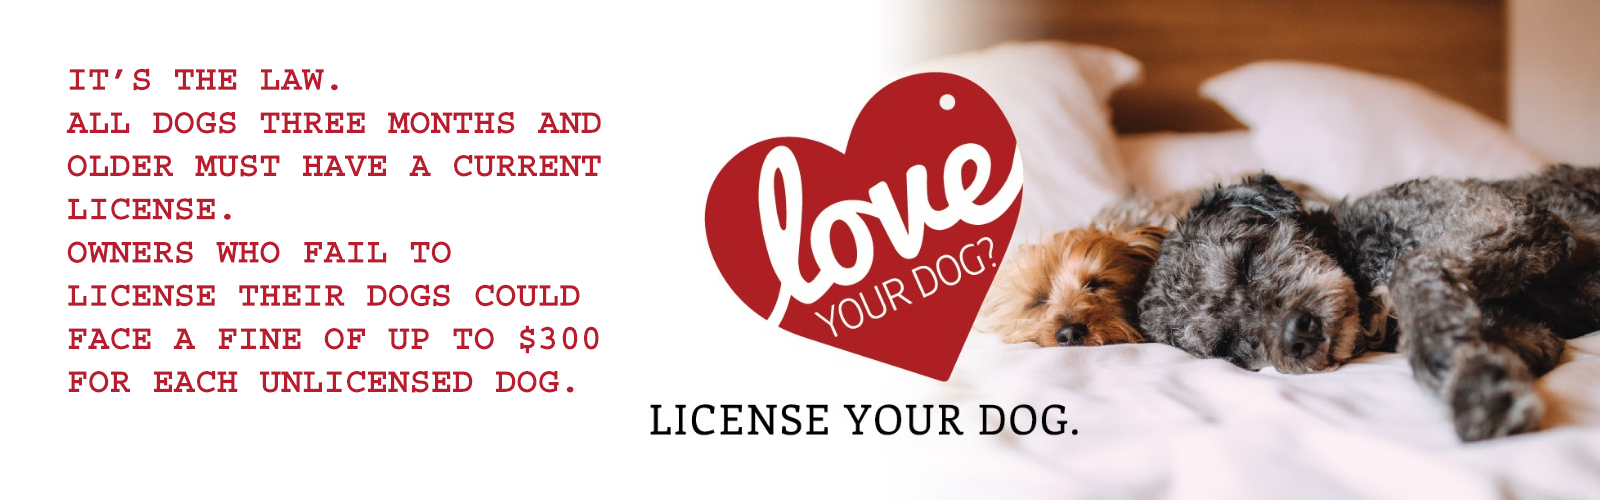 It's the law. All dogs three months and older must have a current license. Owners who fail to license their dogs could face a fine of up to $300 for each unlicensed dog.